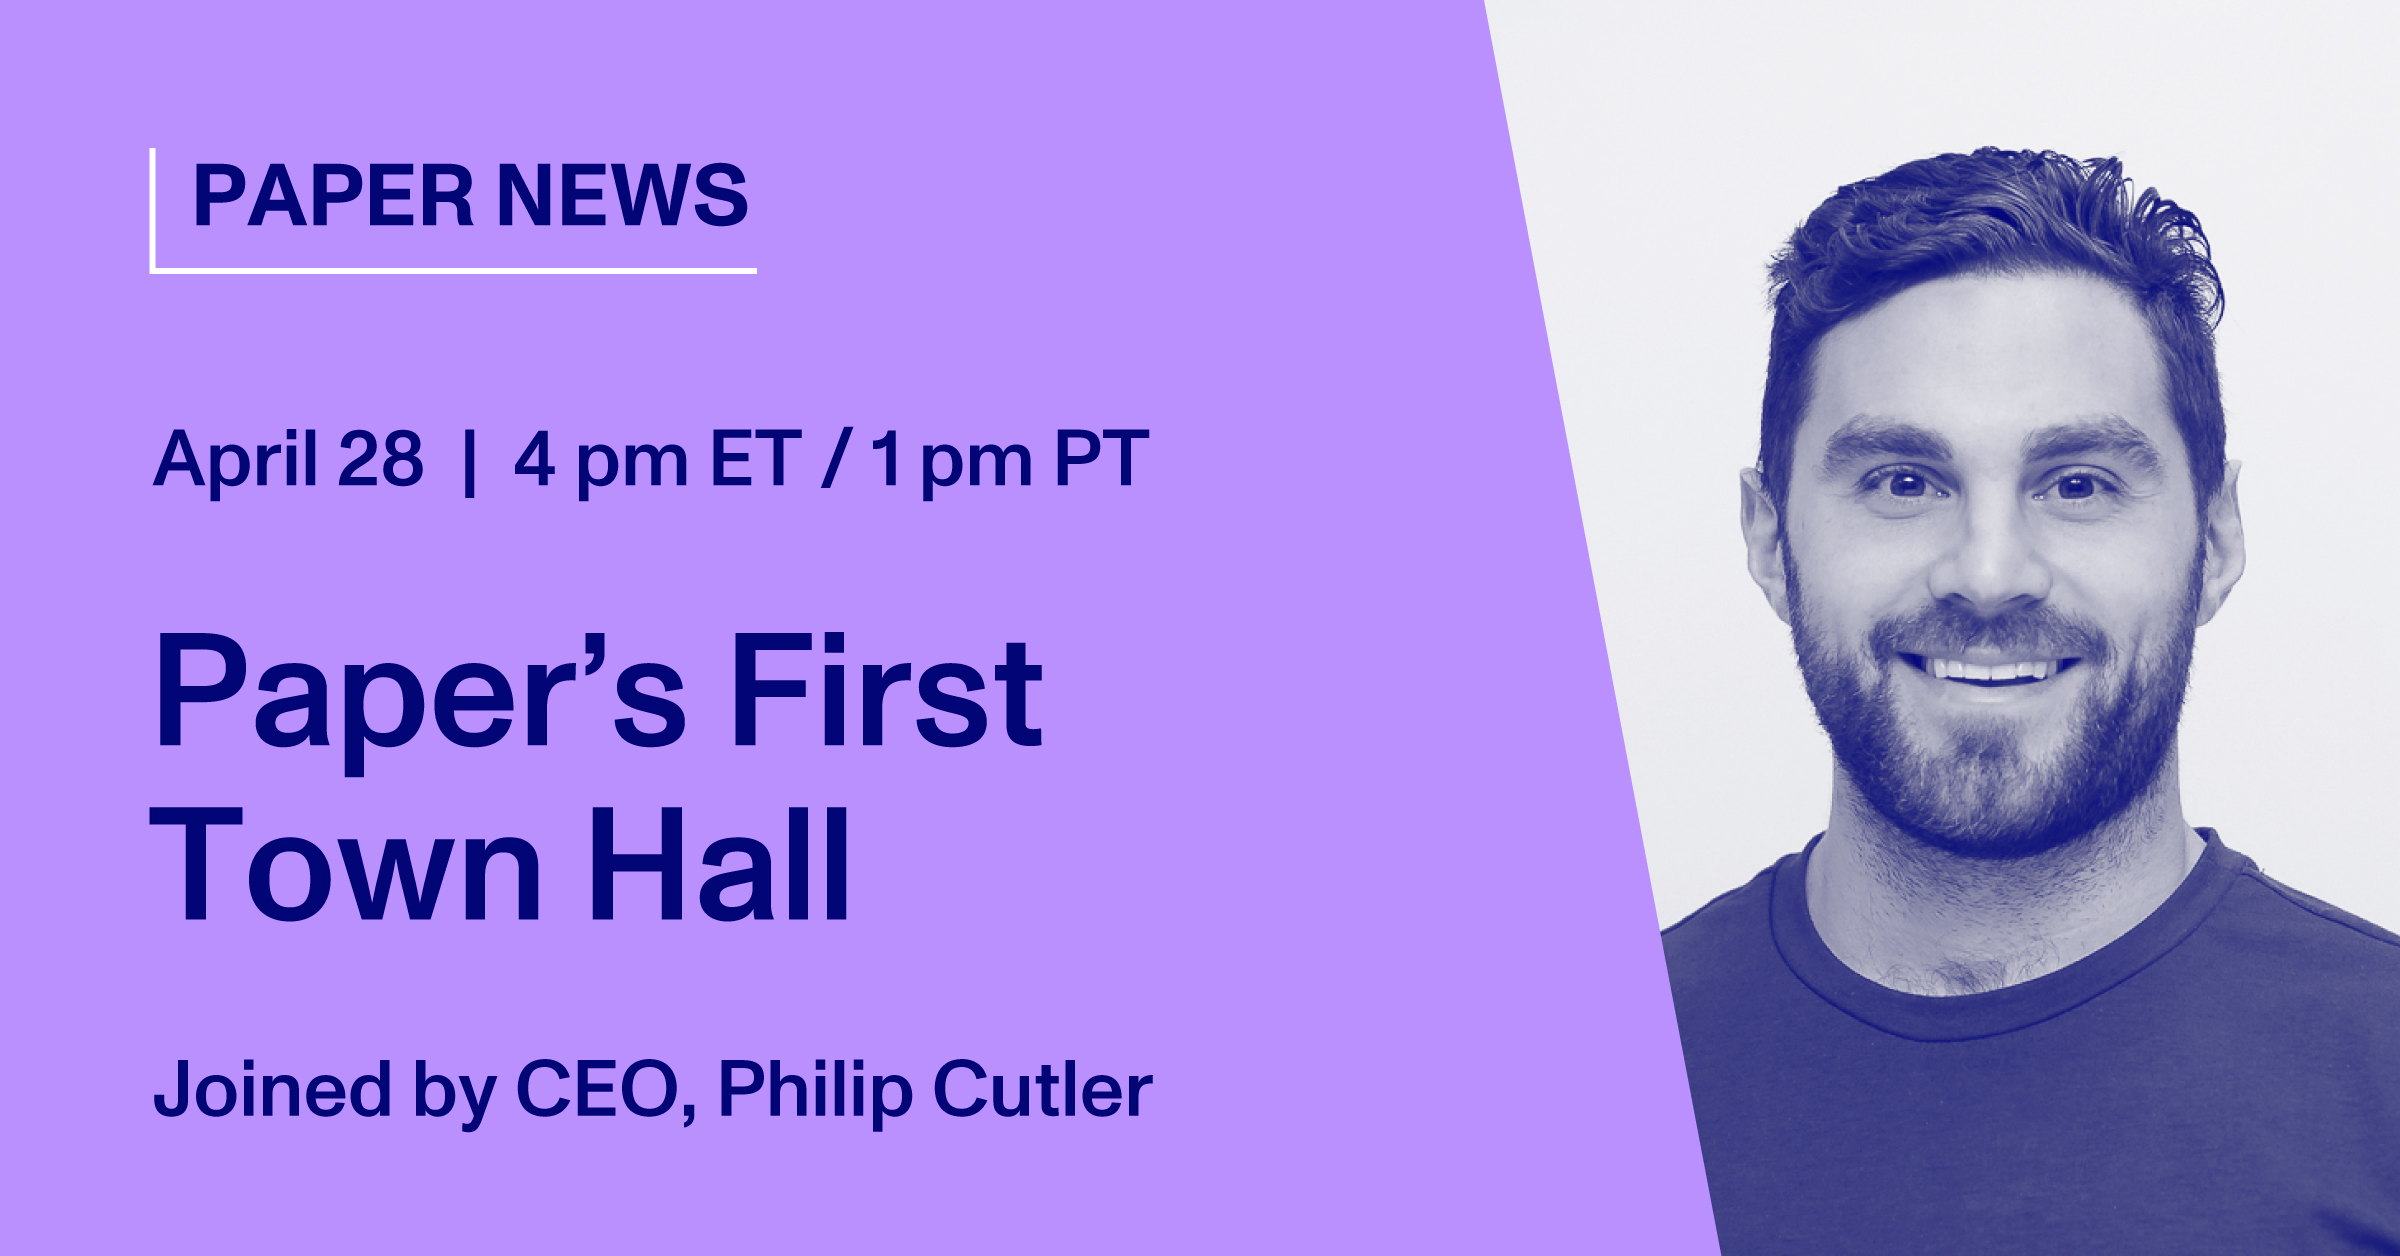 Paper's First Town Hall, Joined by CEO, Philip Cutler